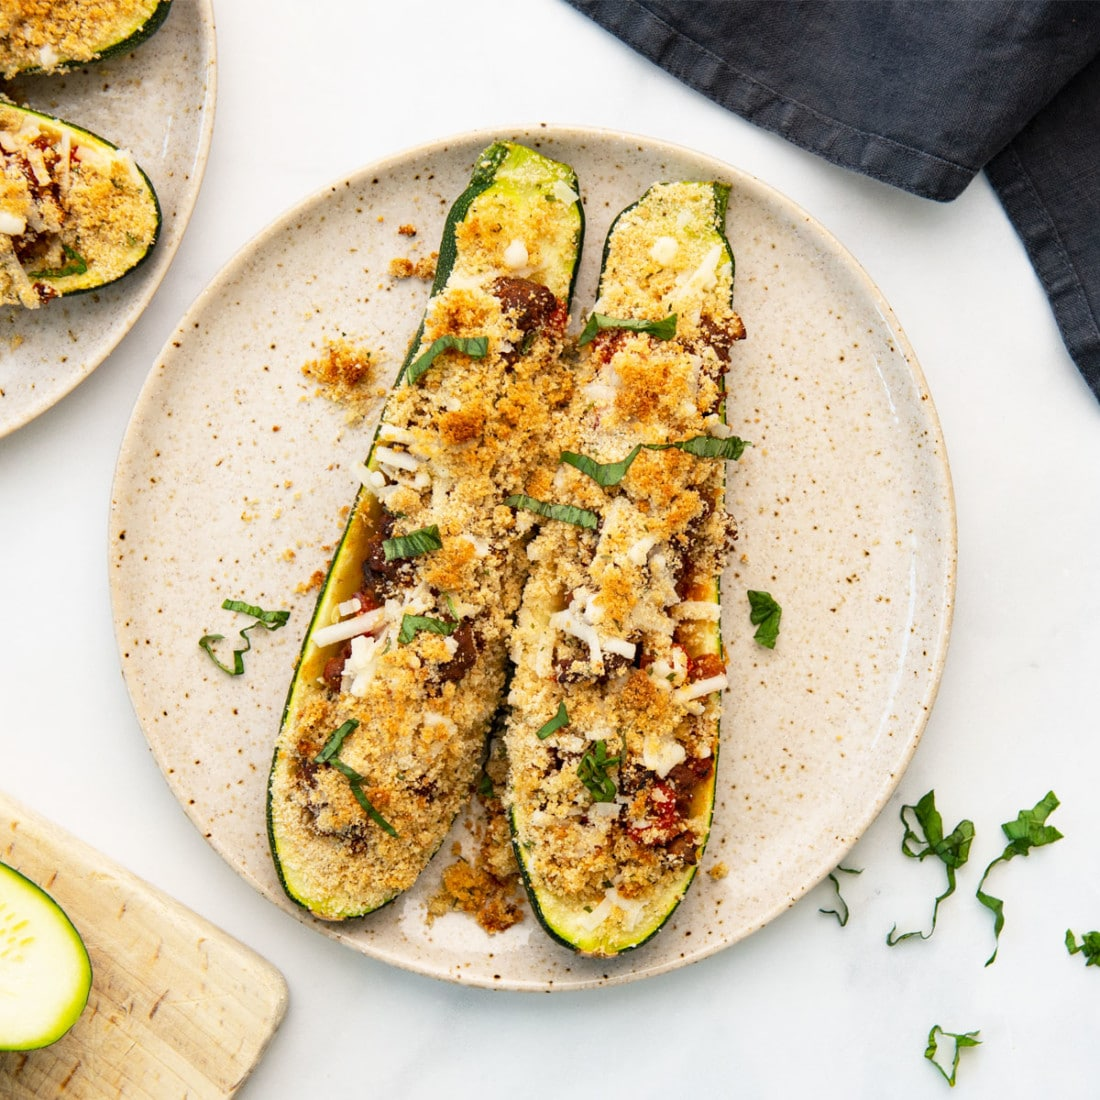 overhead view of baked vegan zucchini boats on a plate